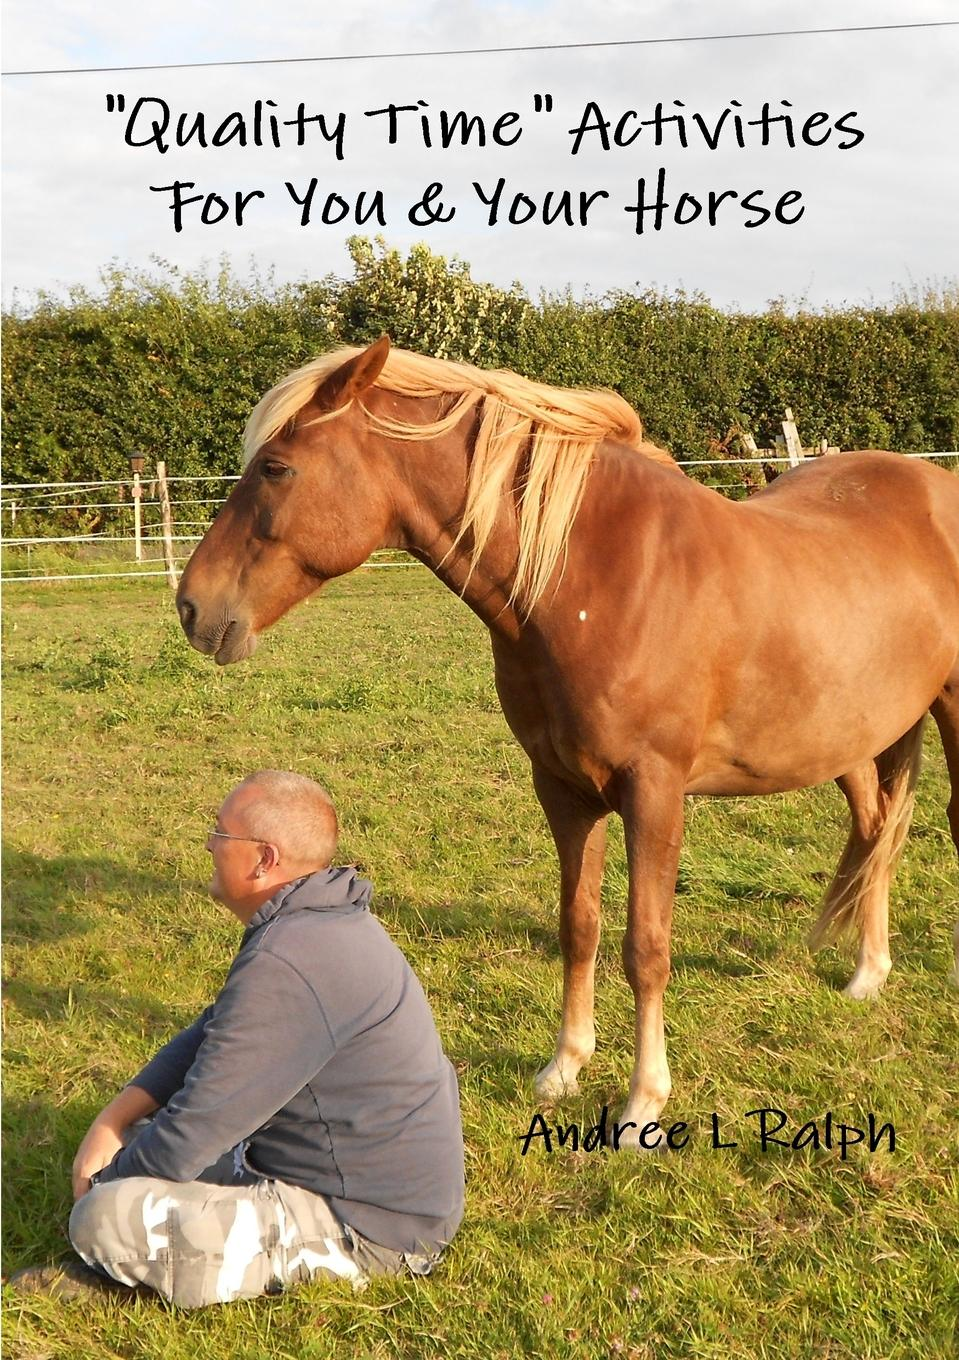 Andree L Ralph Quality Time Activities For You . Your Horse first colouring book horses and ponies